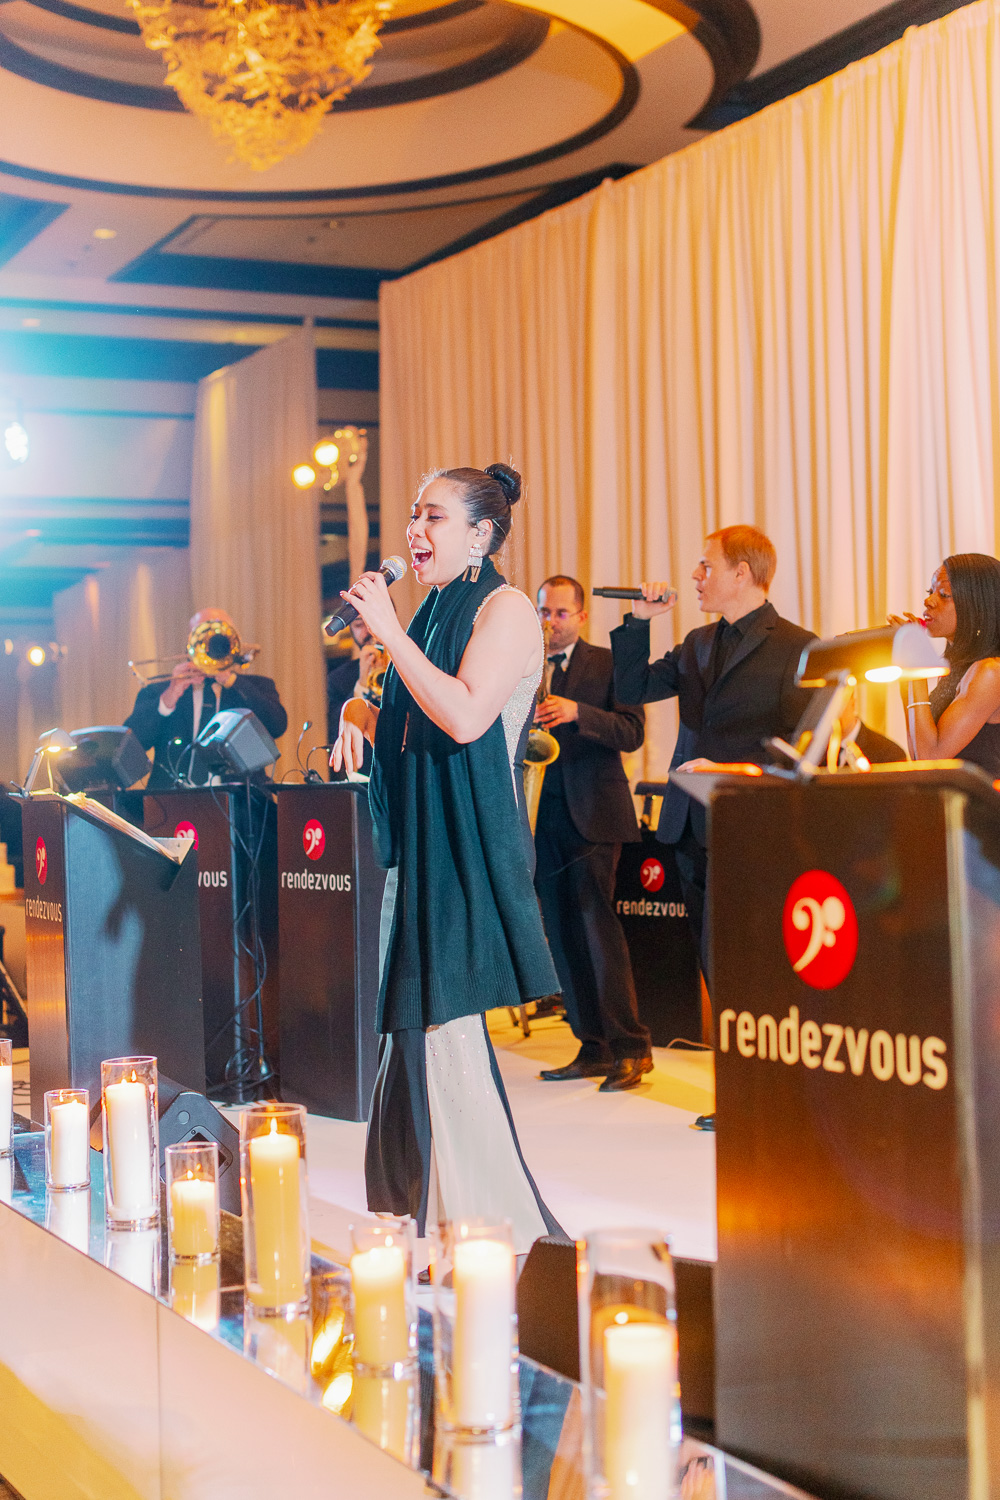 rendezvous music - chicago wedding band - chicago wedding photographer